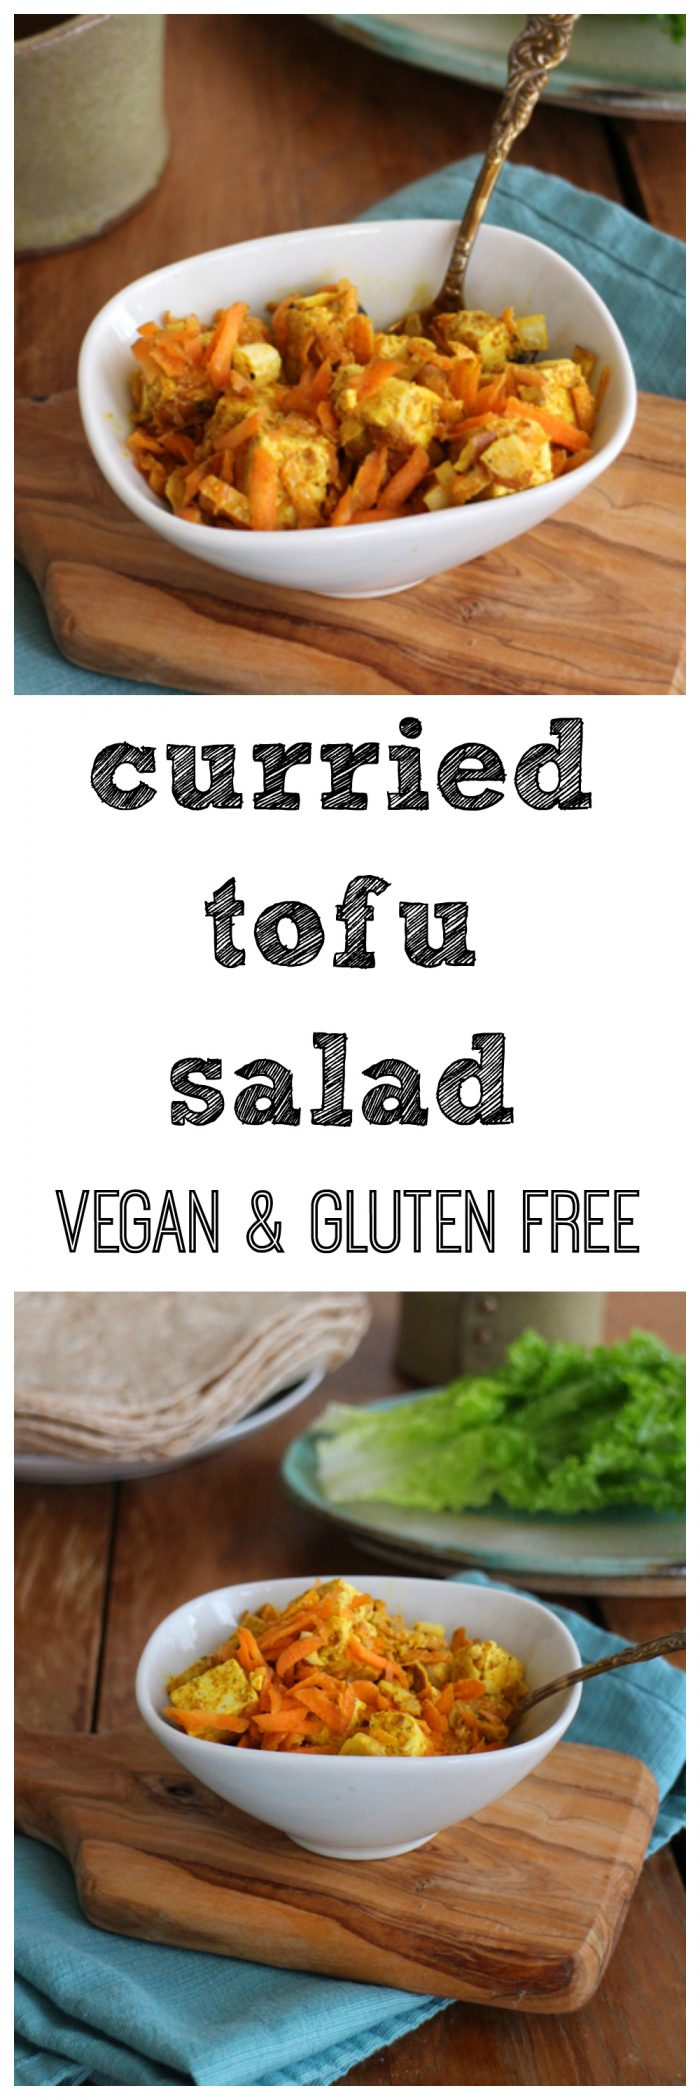 This tasty curried tofu salad is delicious as a side, in a sandwich, or stuffed into a wrap. It's vegan & gluten-free. | cadryskitchen.com